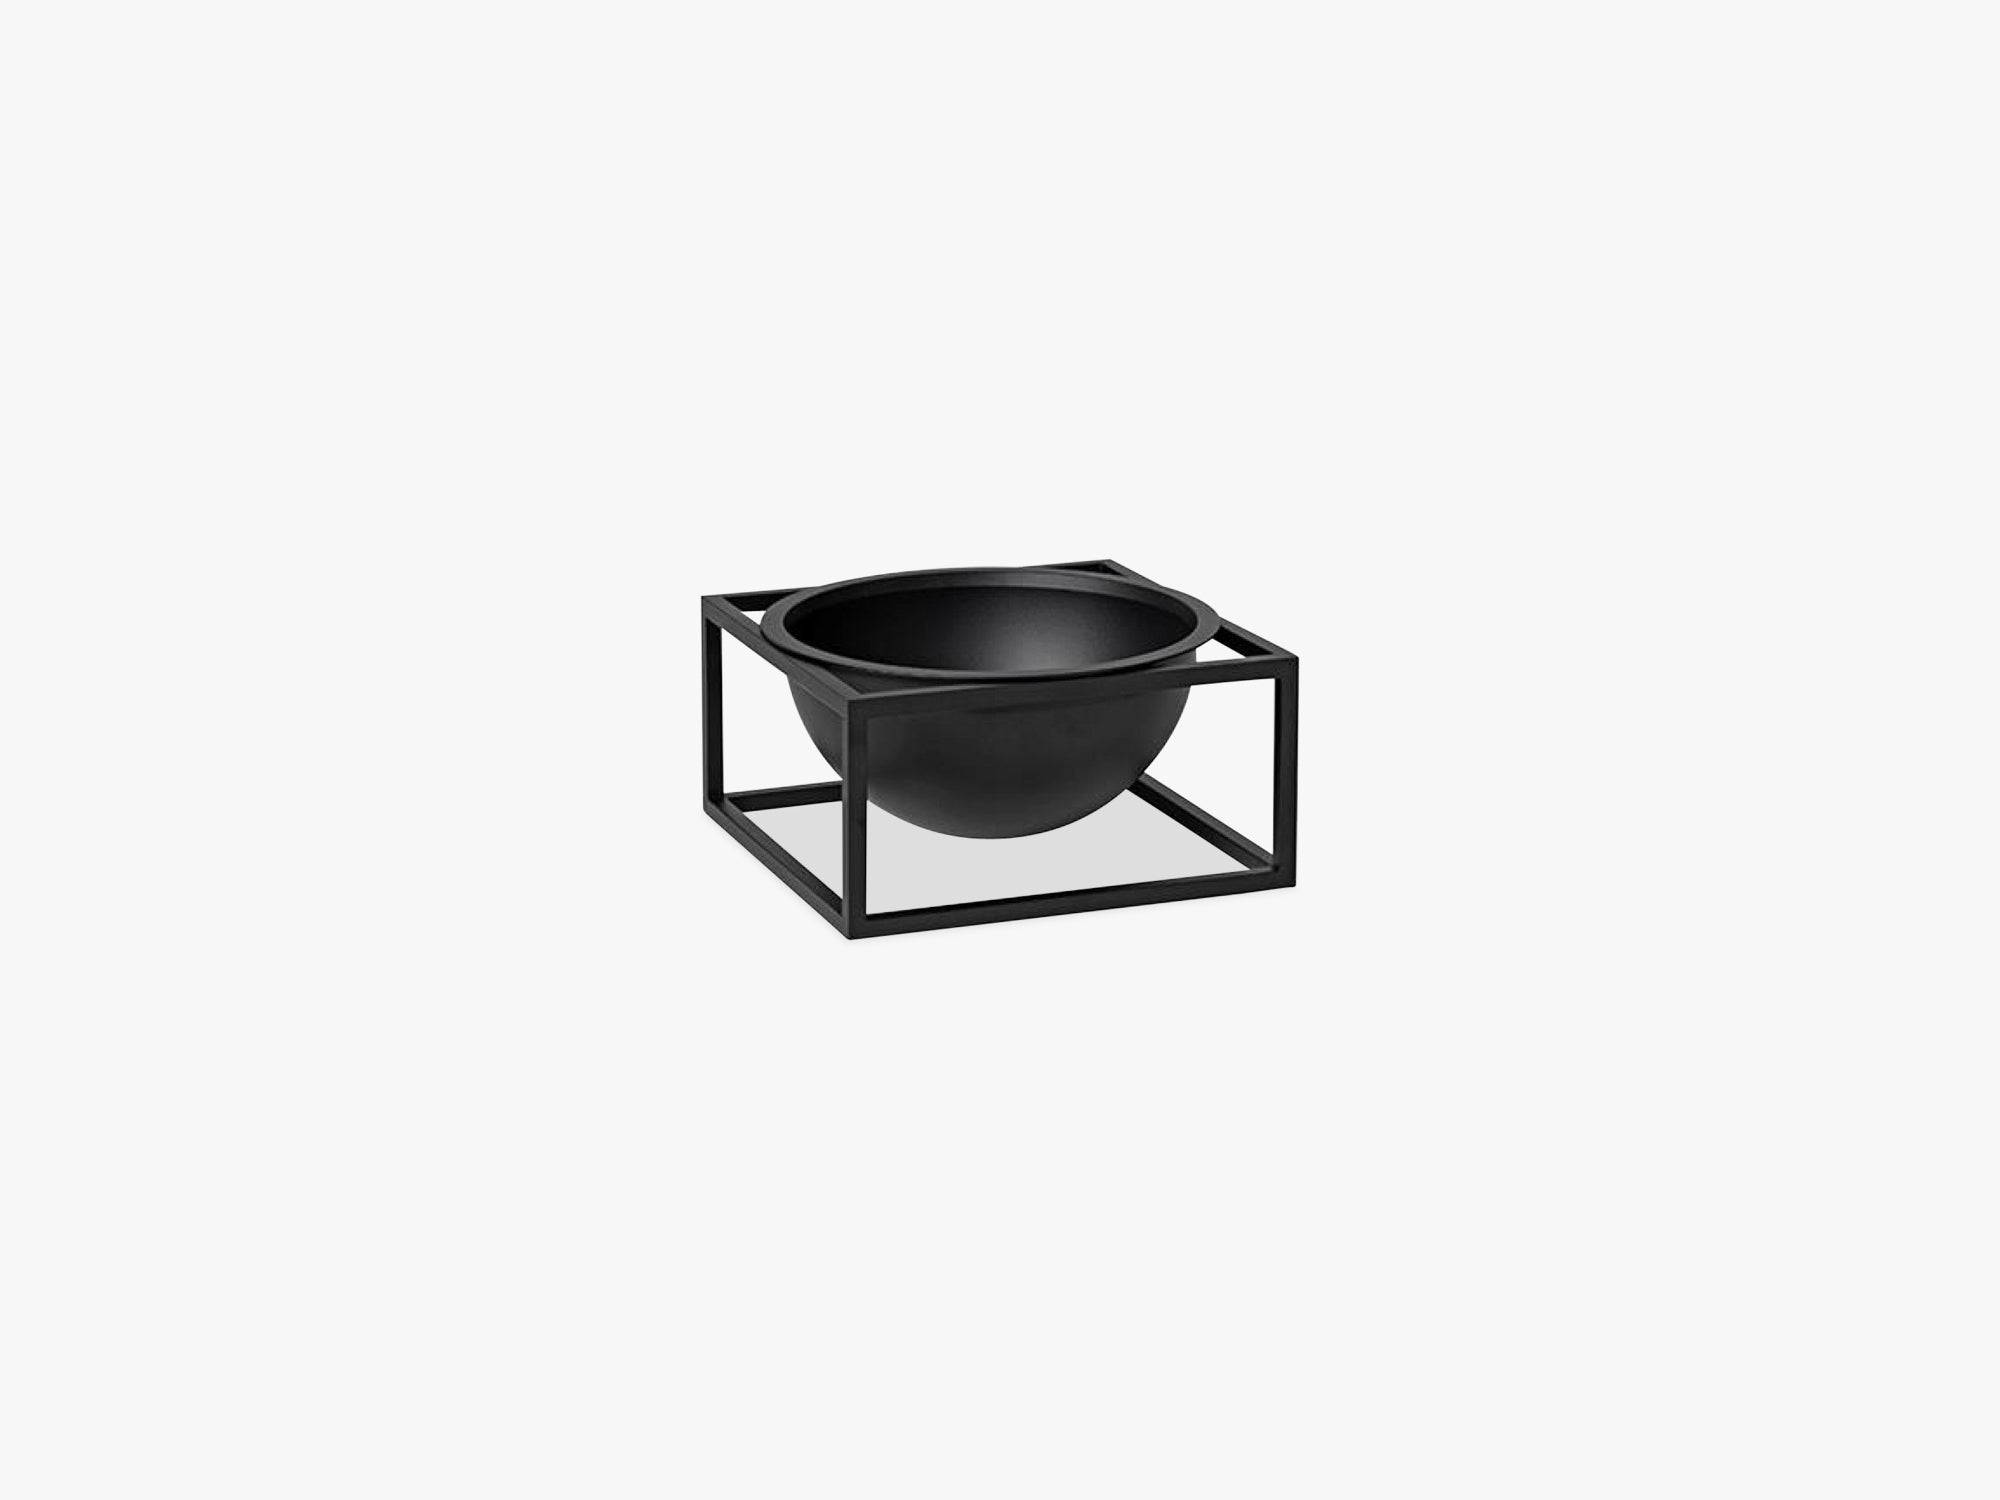 Kubus Bowl centerpiece small, black fra By Lassen